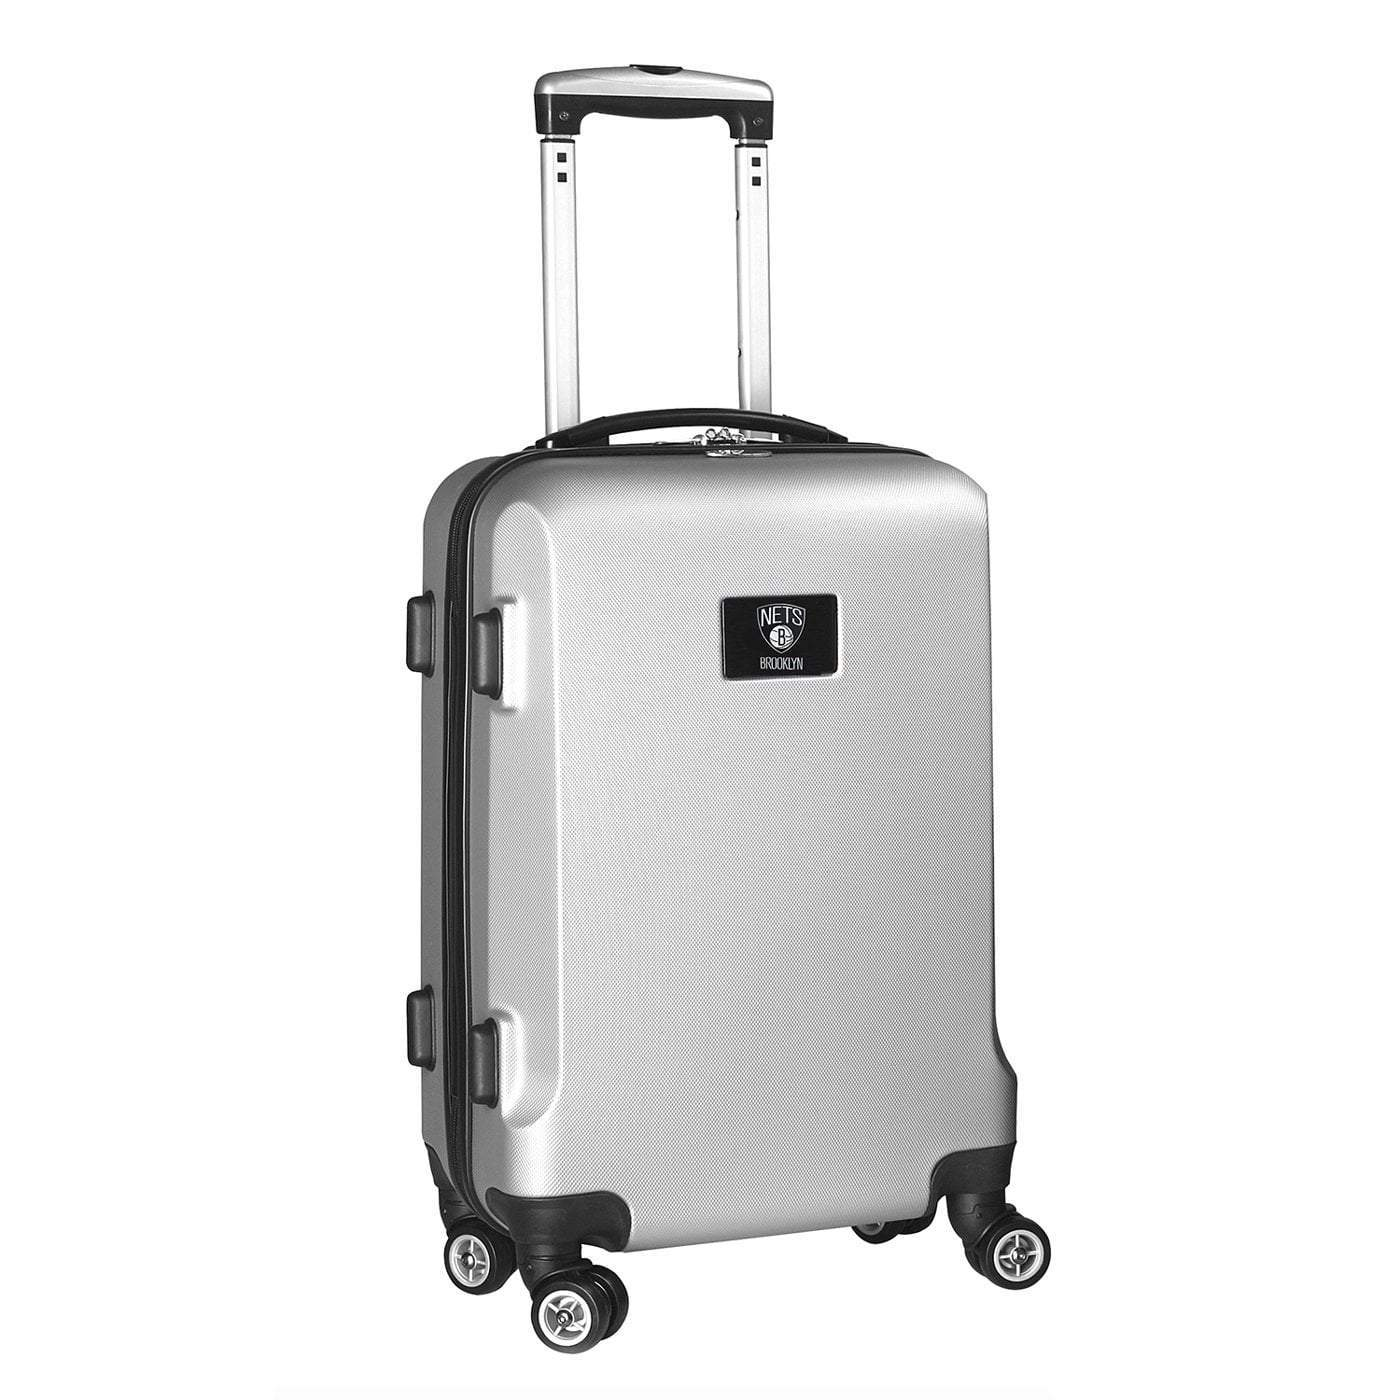 "Mojo-Denco Luggage Brooklyn Nets Denco 20"" Hardcase Luggage Carry-on Spinner - Silver"